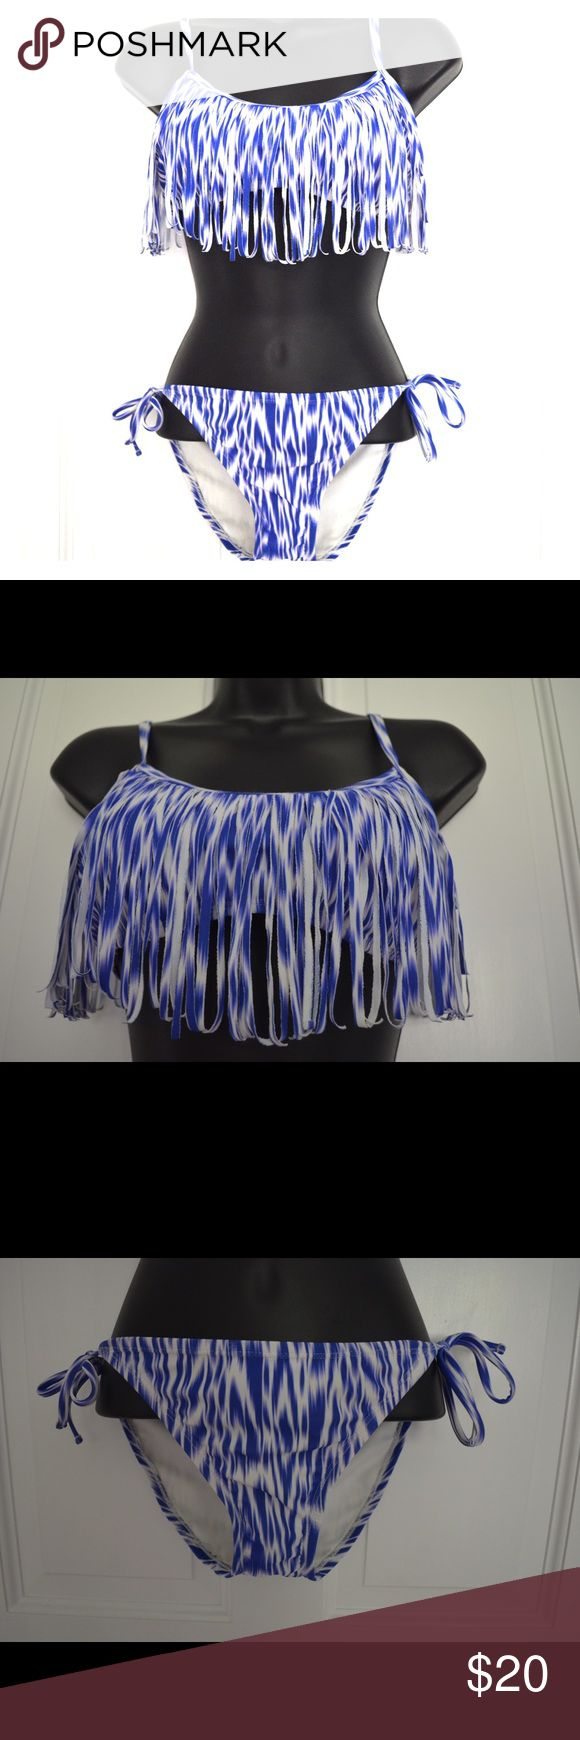 Xhilaration Target Bikini Size Medium Top & Bottom Only worn a few times and looks awesome on. Has a little wear on the but butt cannot be seen when worn. Awesome design for pool or beach day! Xhilaration Swim Bikinis